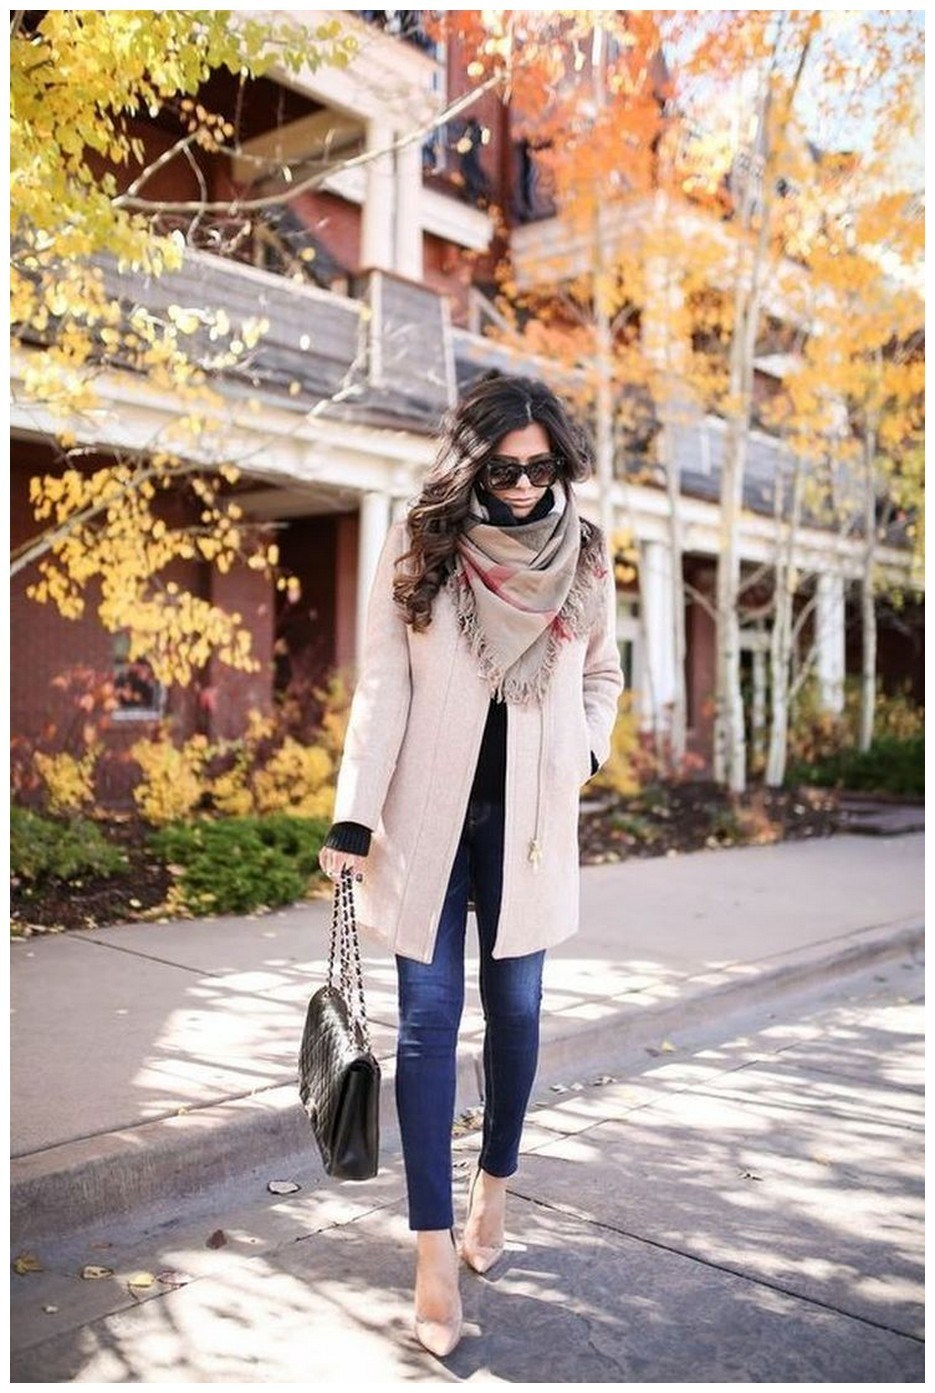 45+ trending winter outfits to copy right now 47